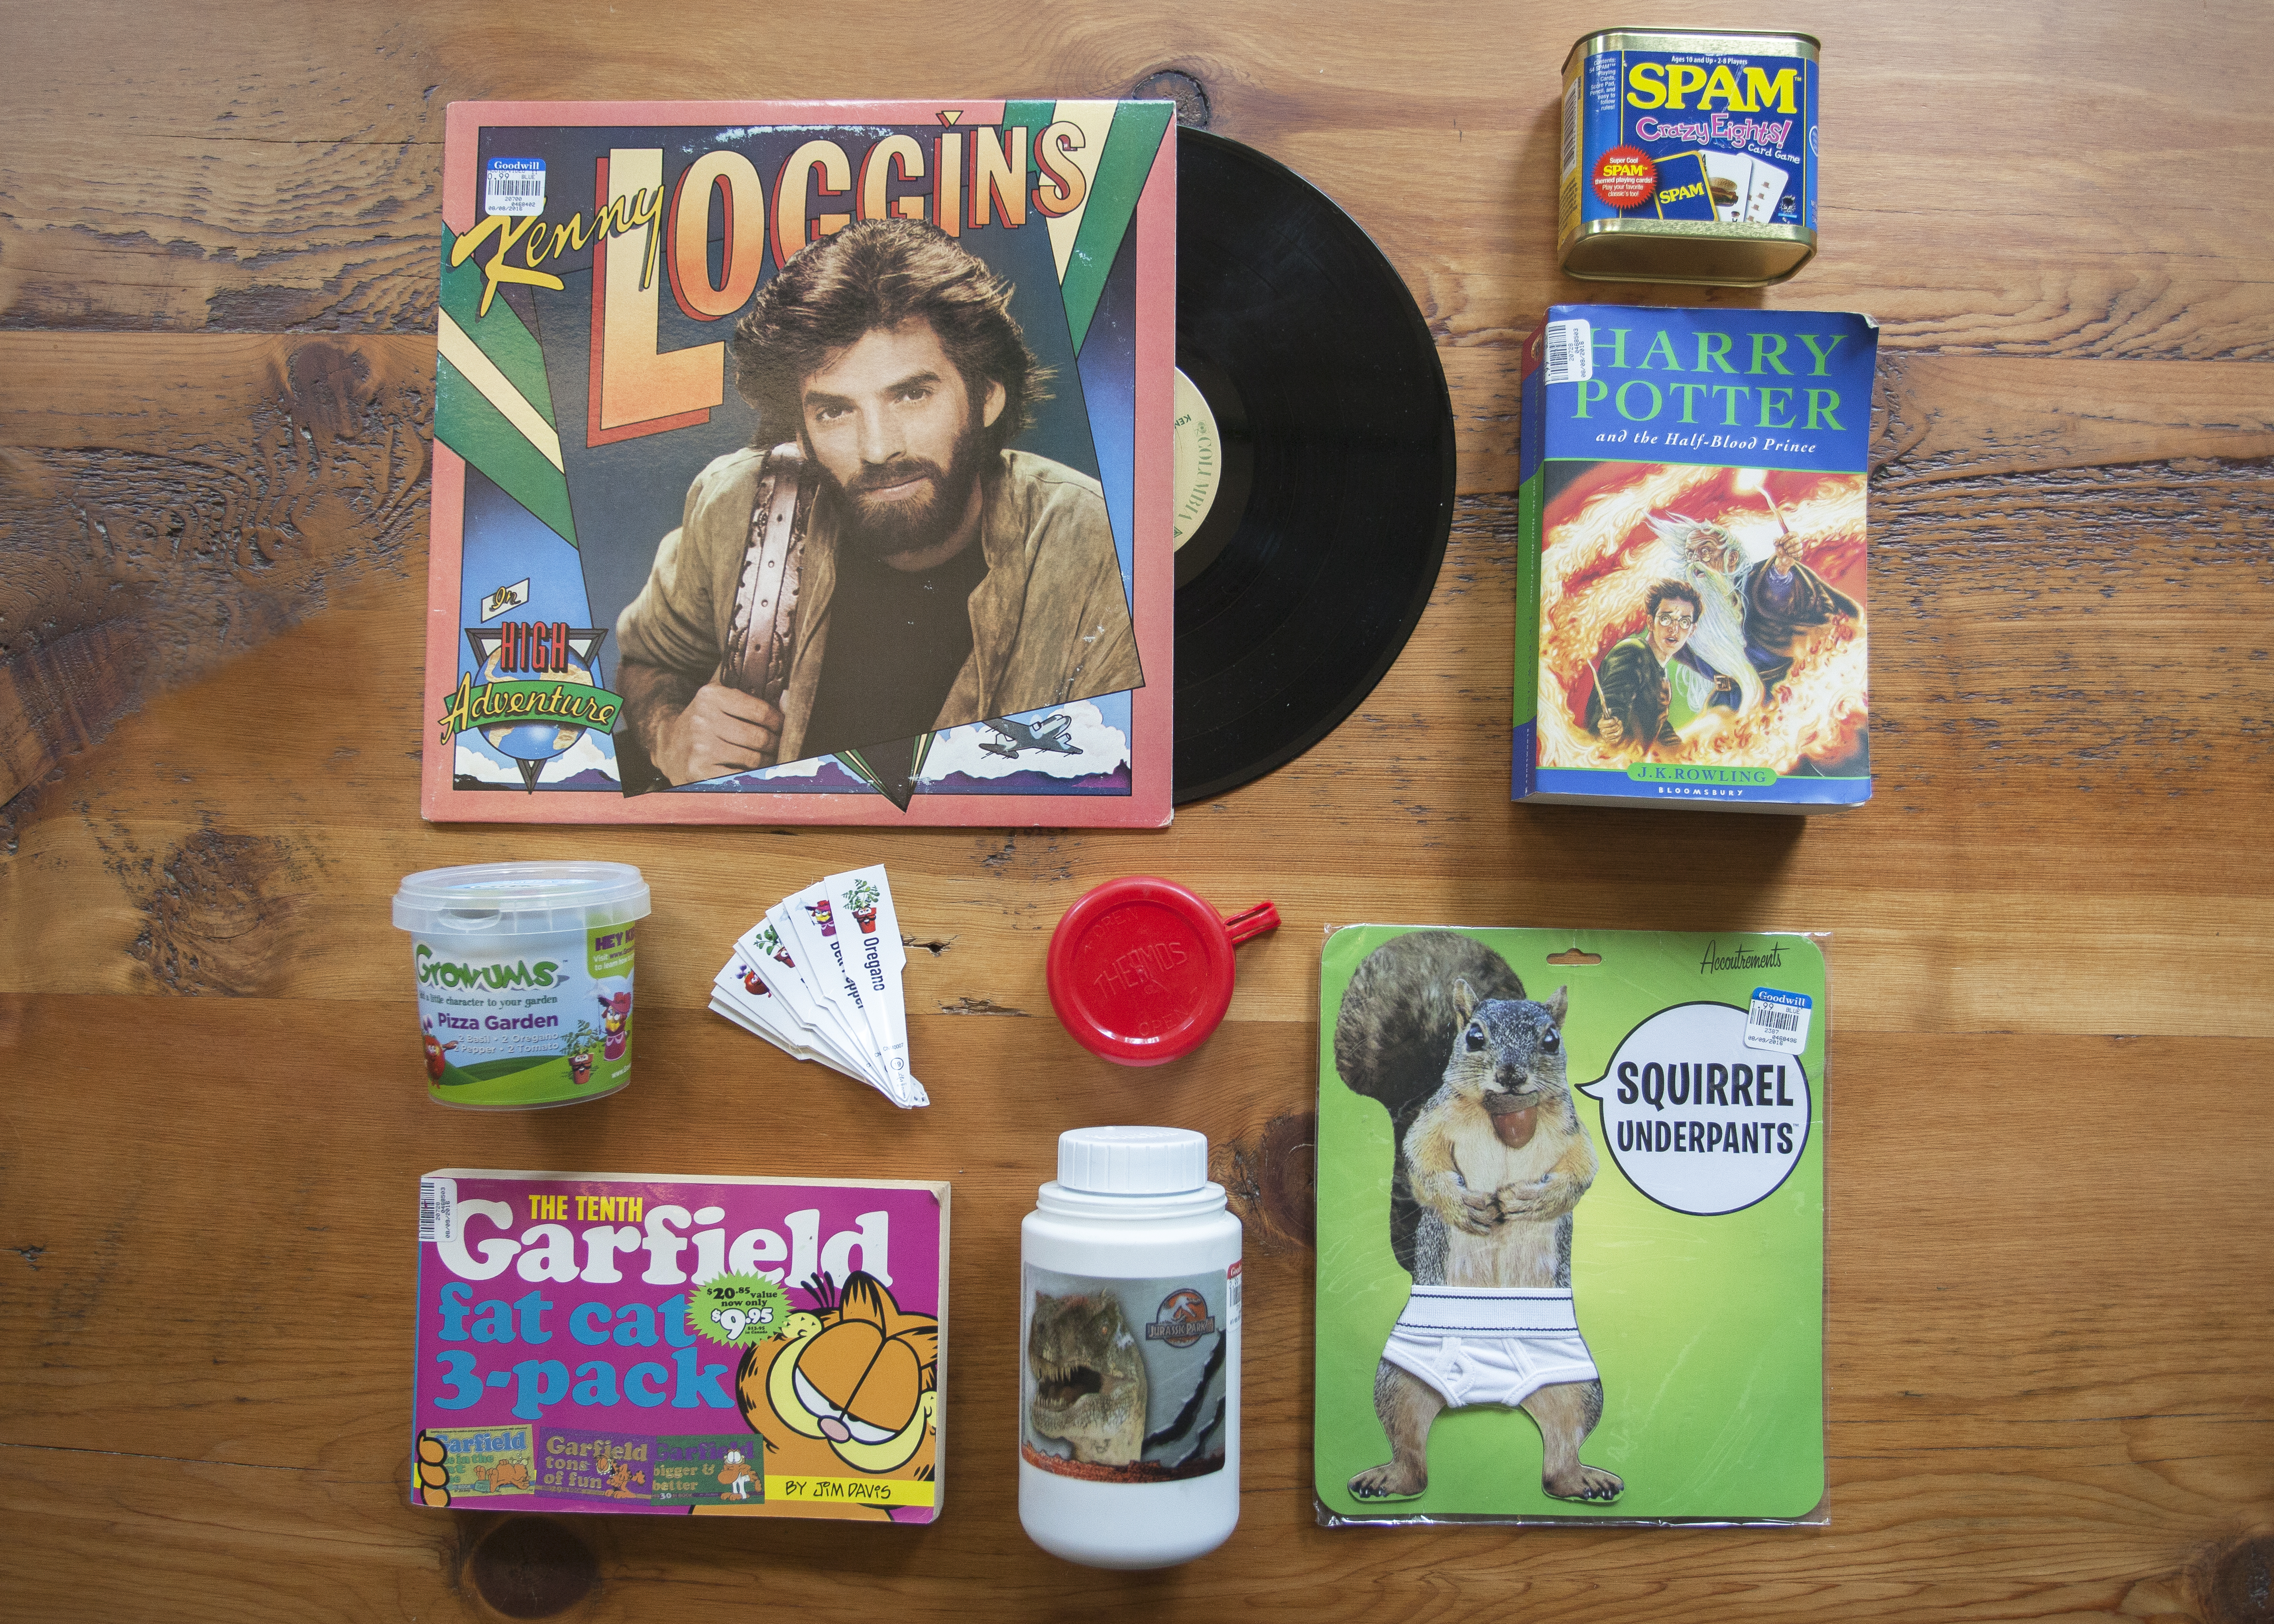 Shopper #5's items for the Leafly Thrift Shop Cannabis Challenge